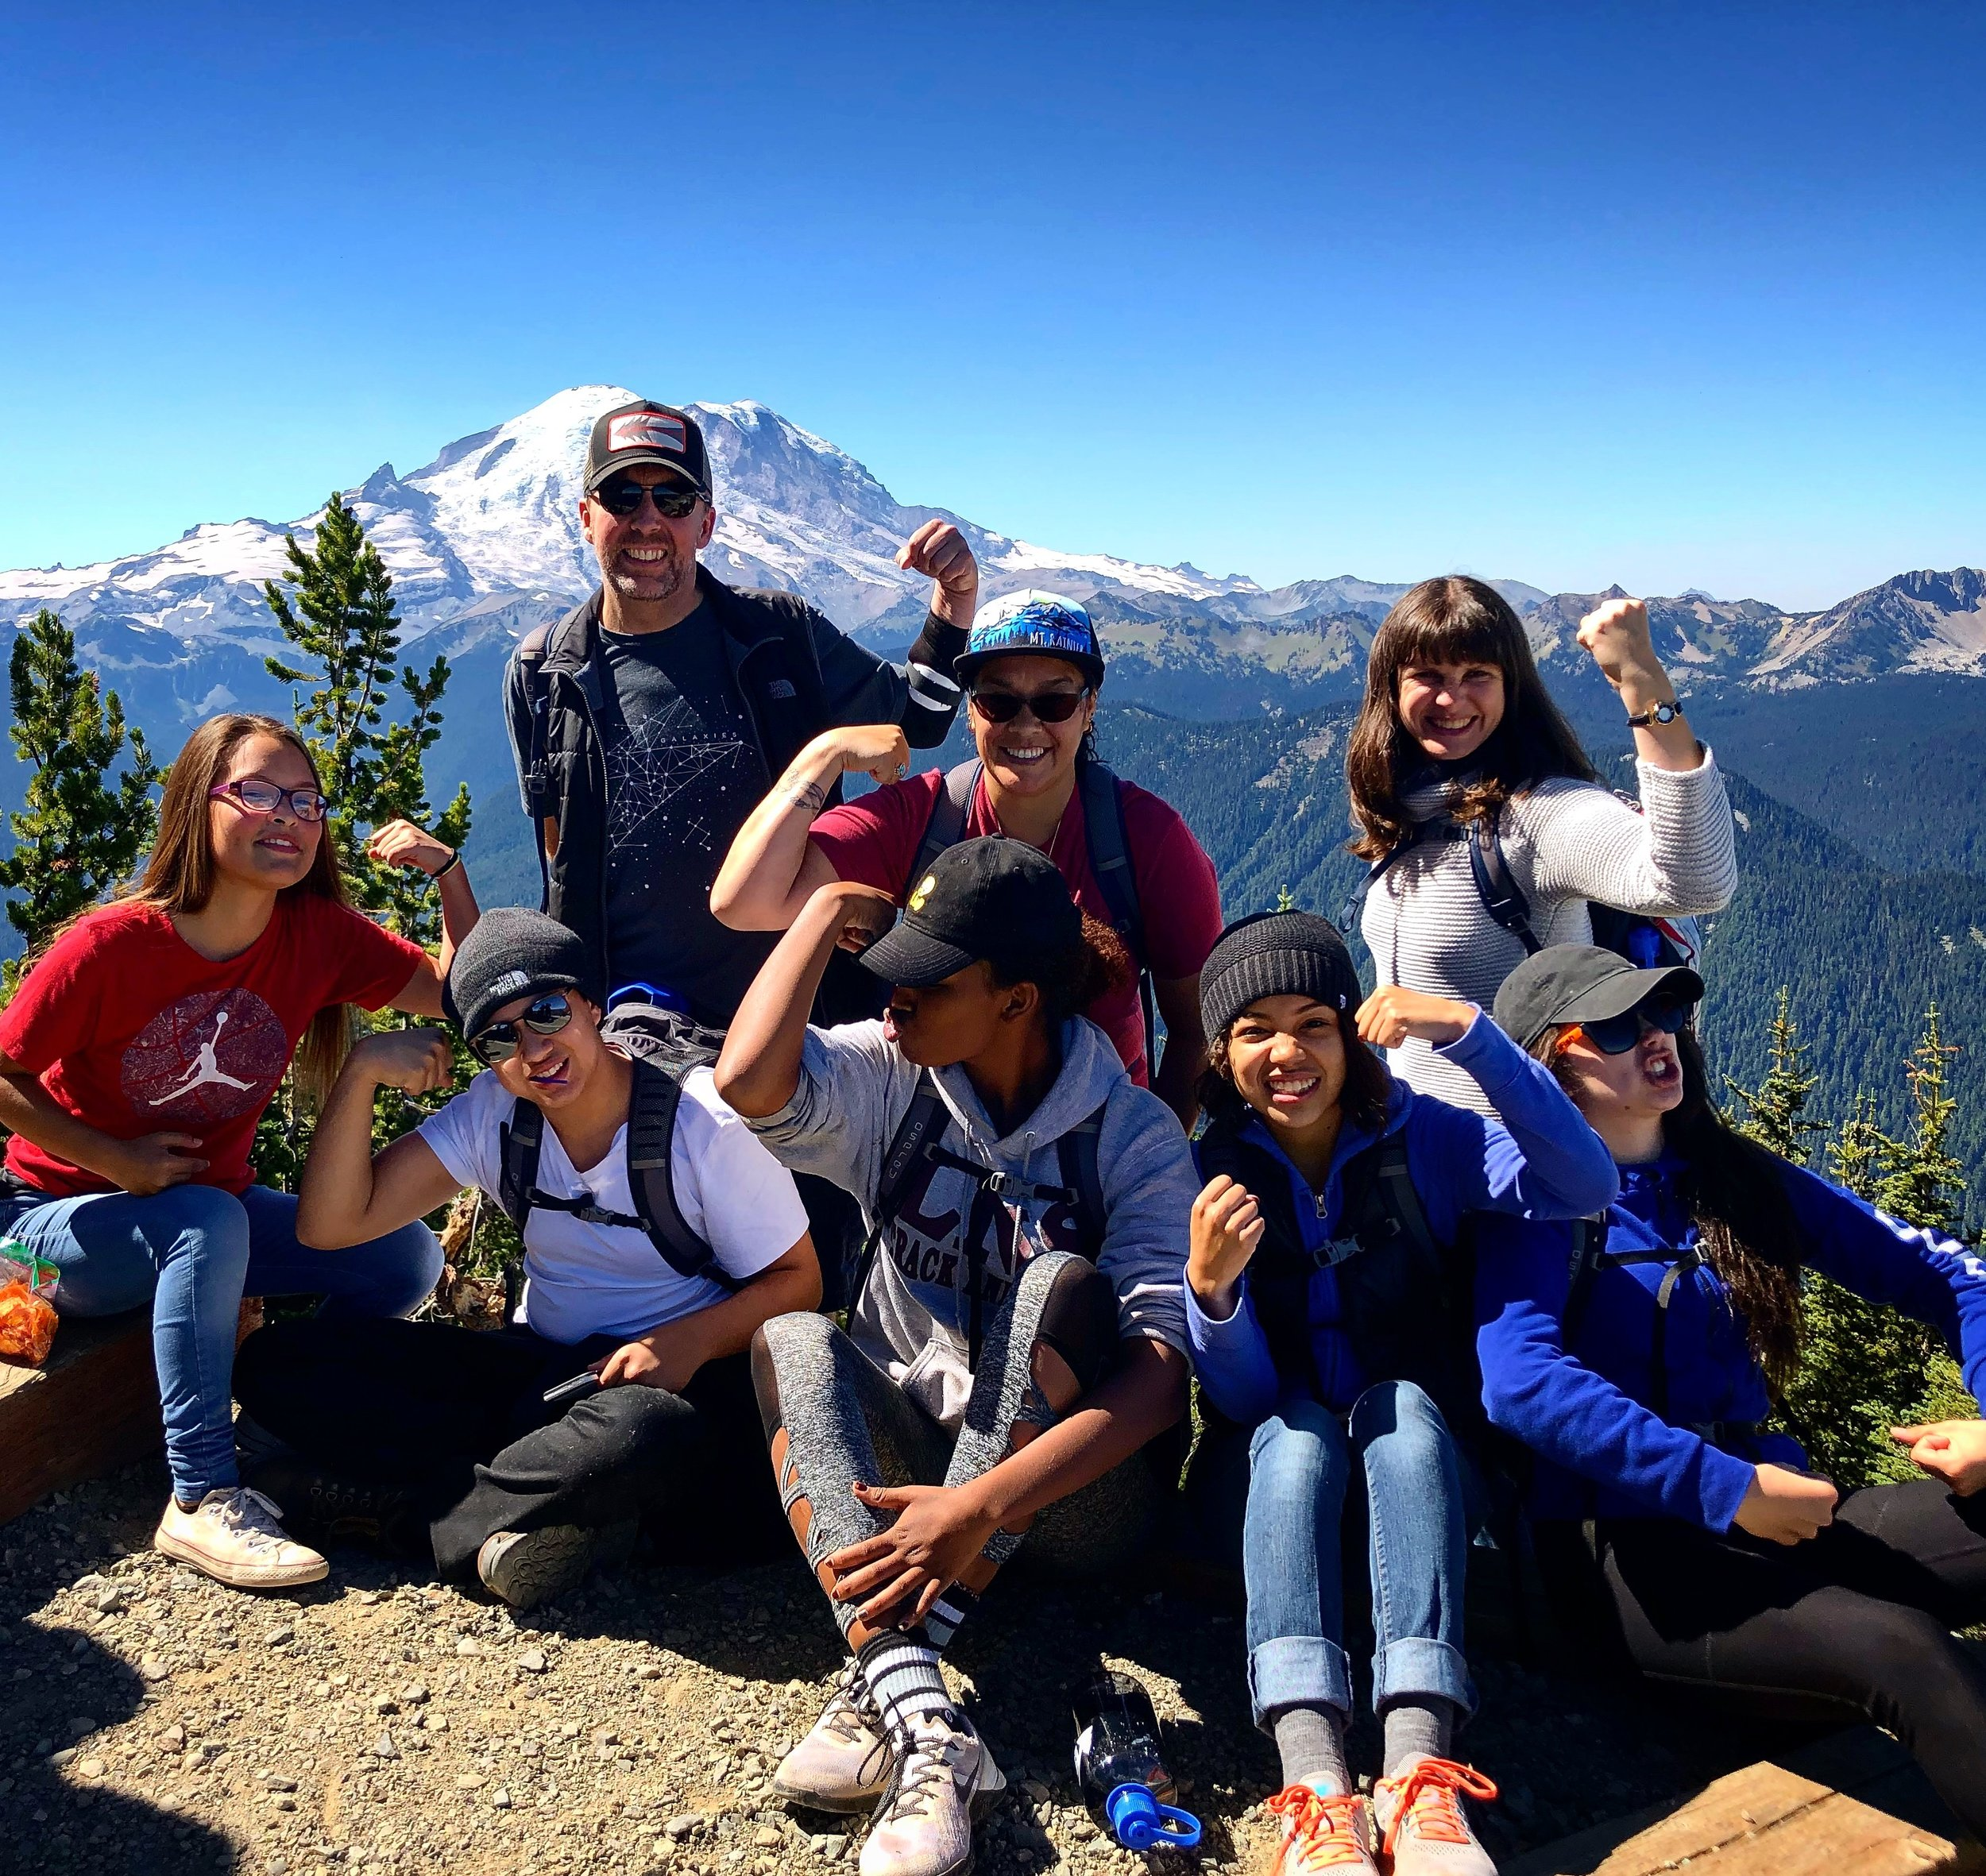 On the summit of Crystal Mountain overlooking Mt. Rainier. We are stronger together!